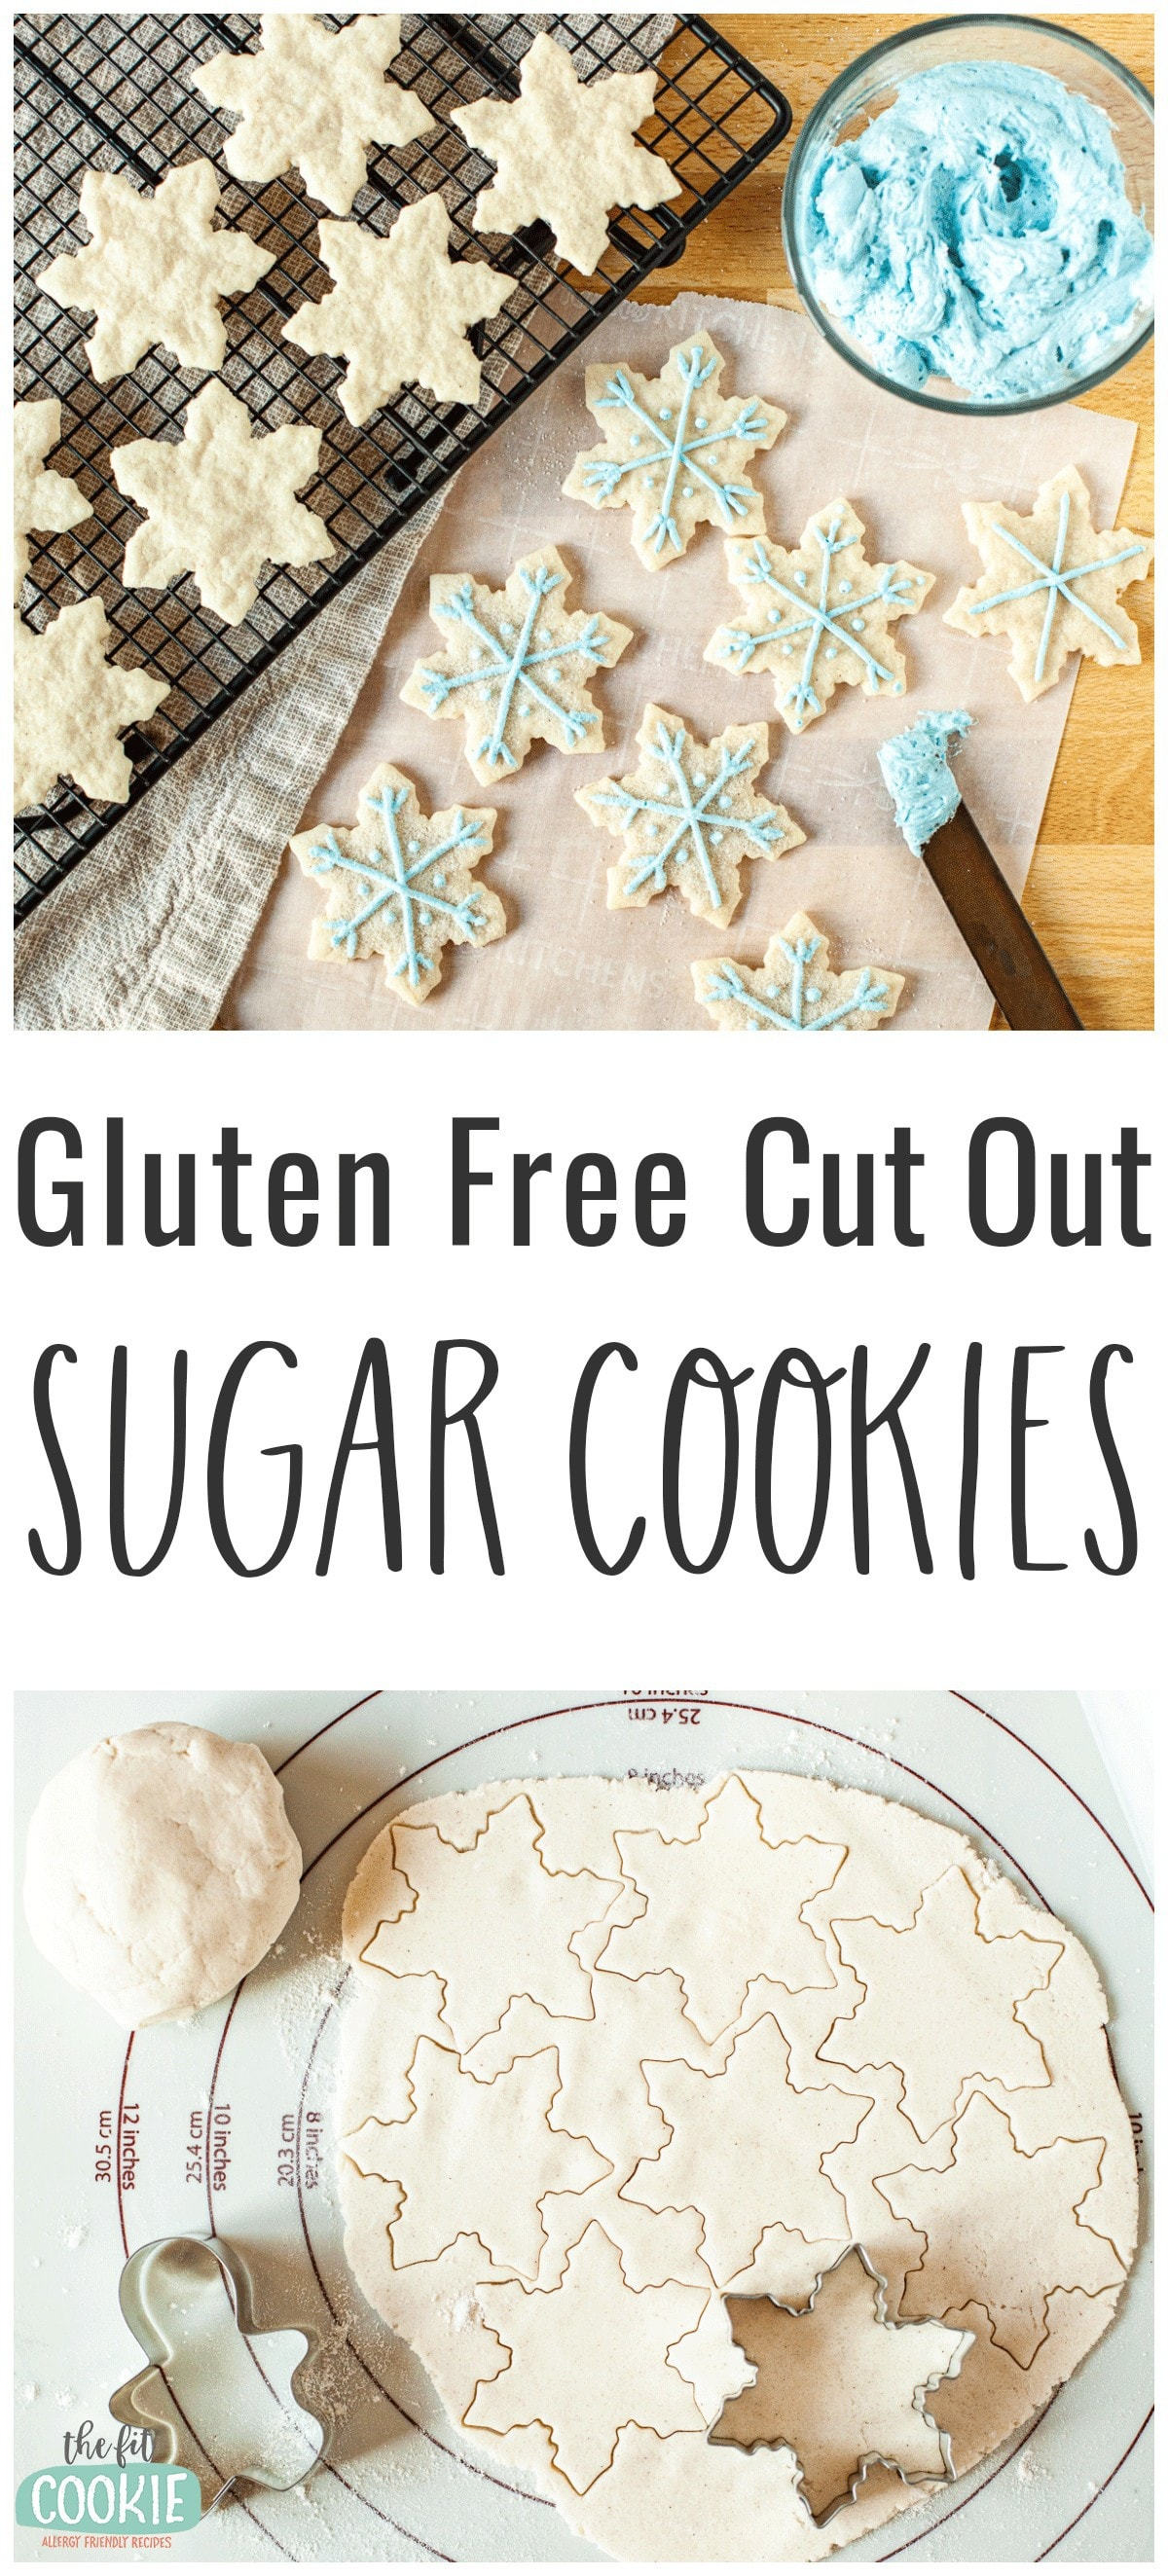 photo collage of gluten free cut out cookies shaped like snowflakes